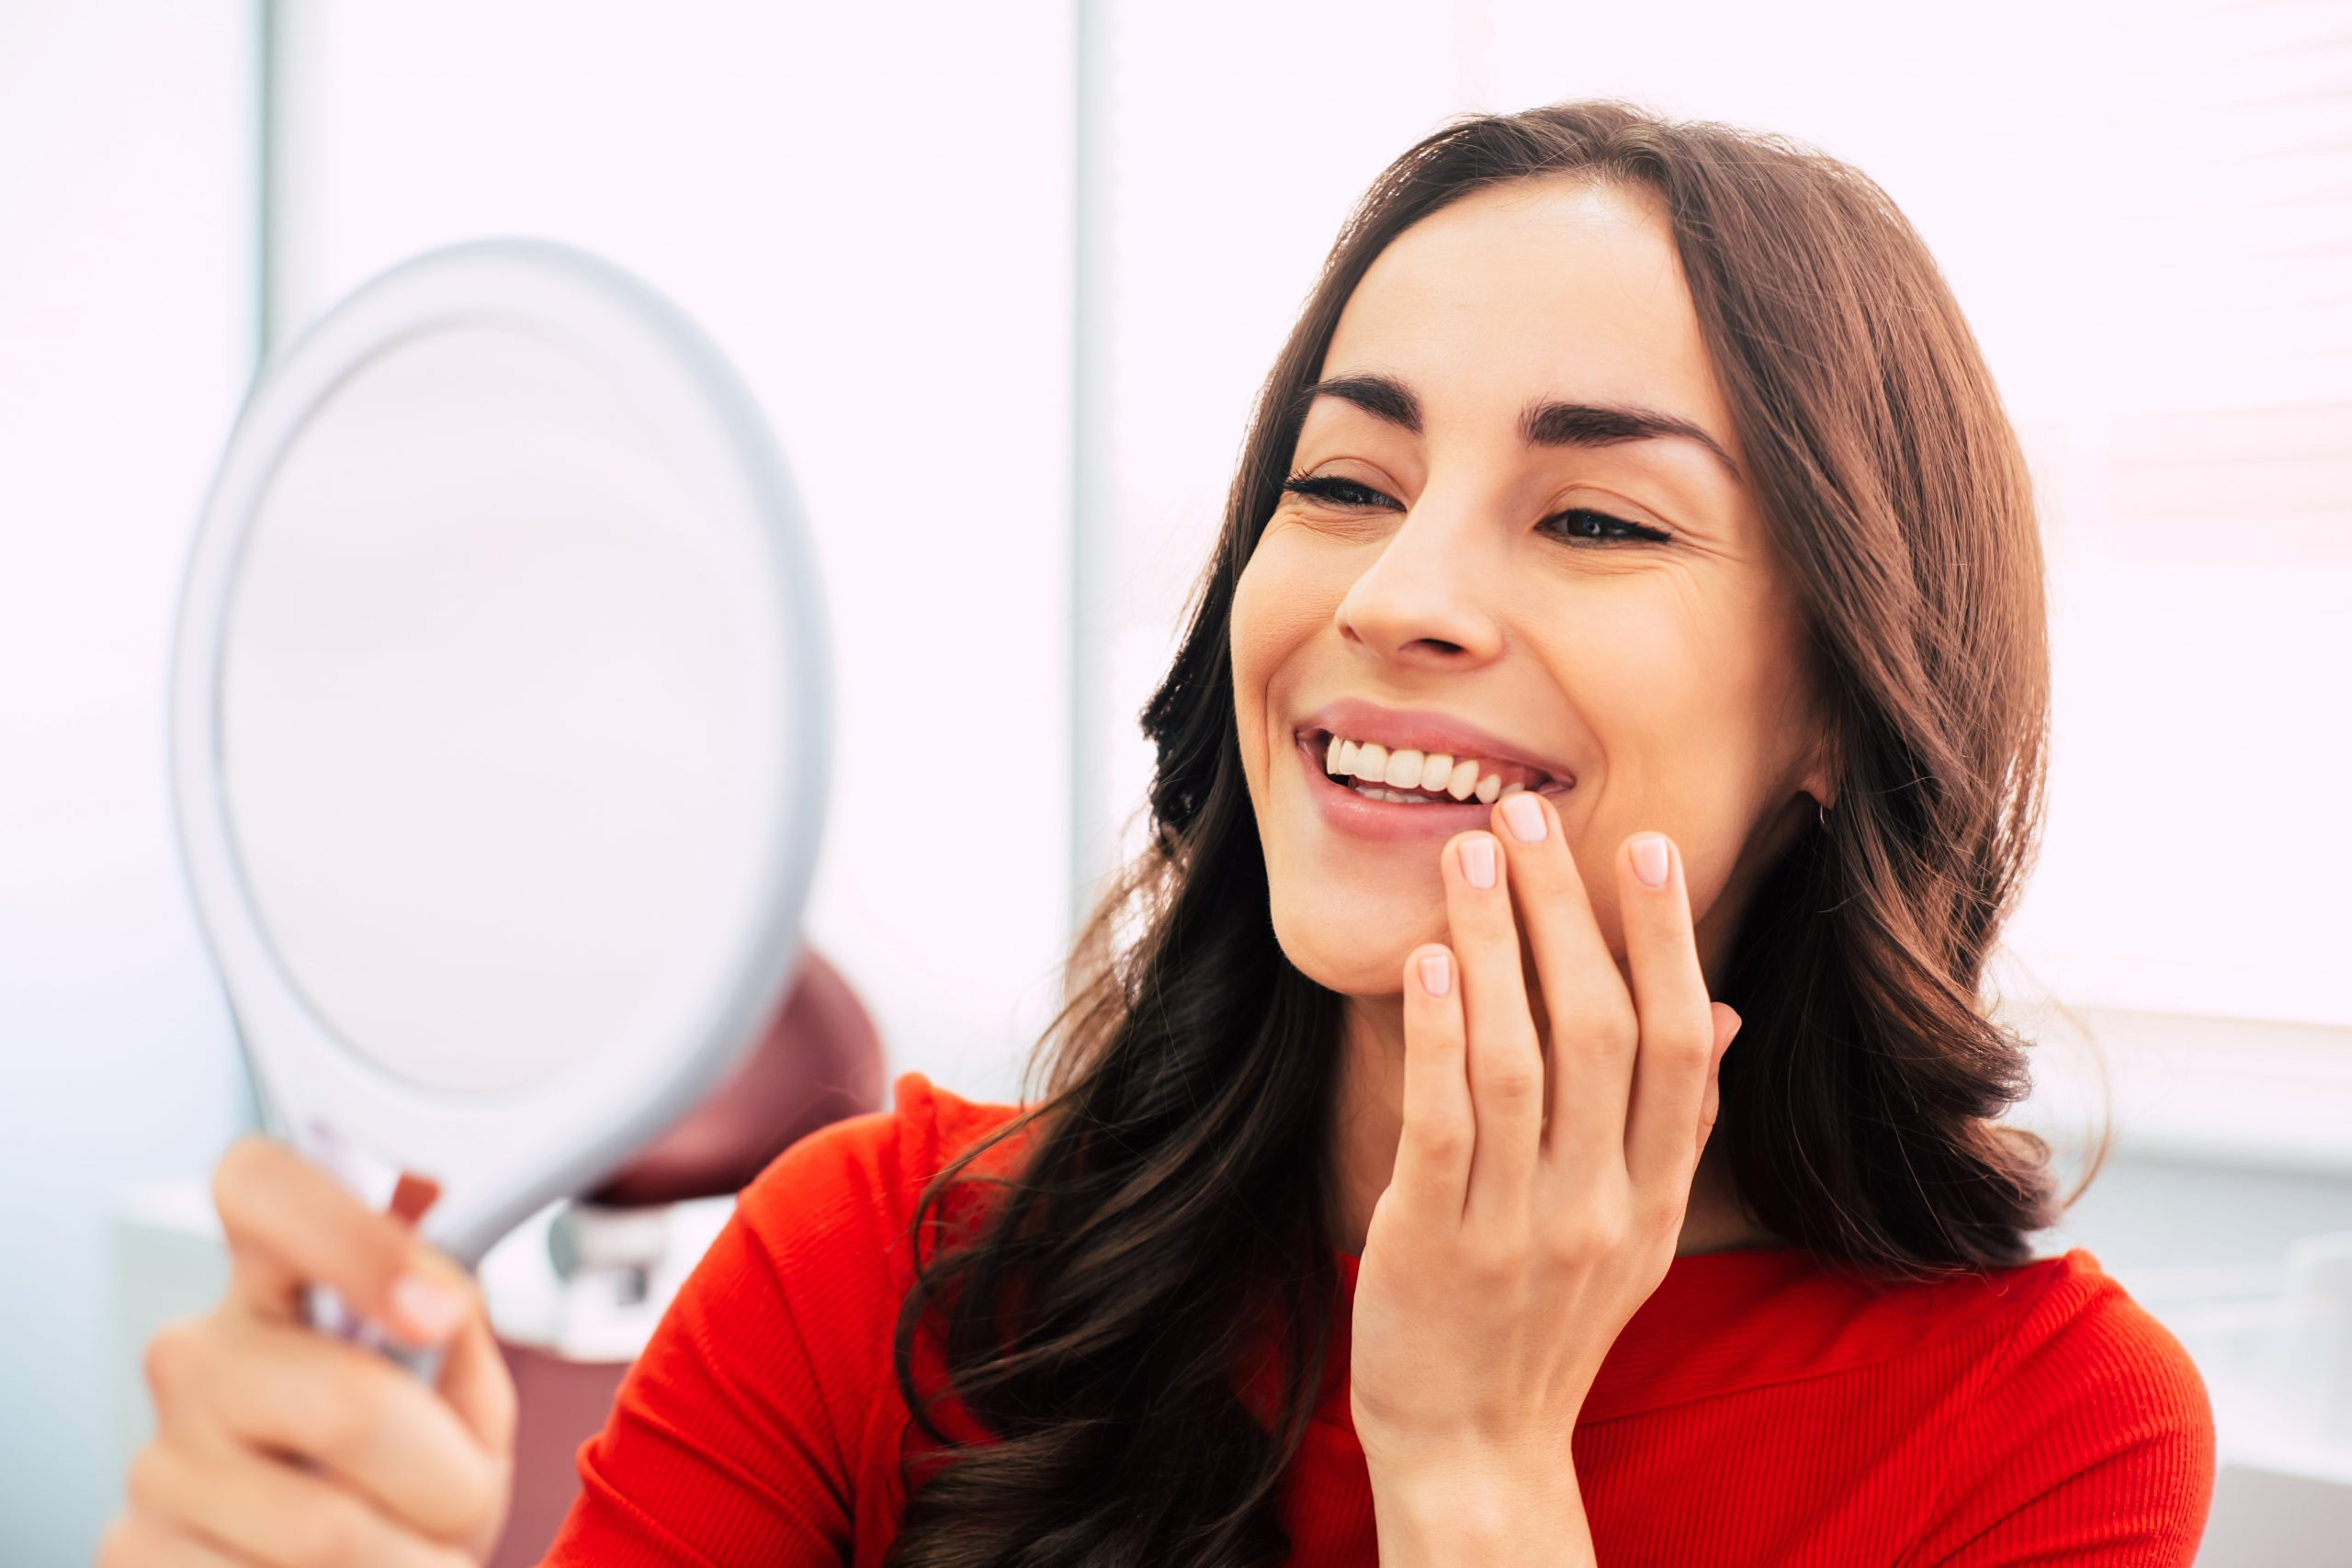 Honed to perfection. Fabulous woman clothed in red sweater, with curly long hair and elegant hands is holding a mirror for looking through the final work of dental doctor.